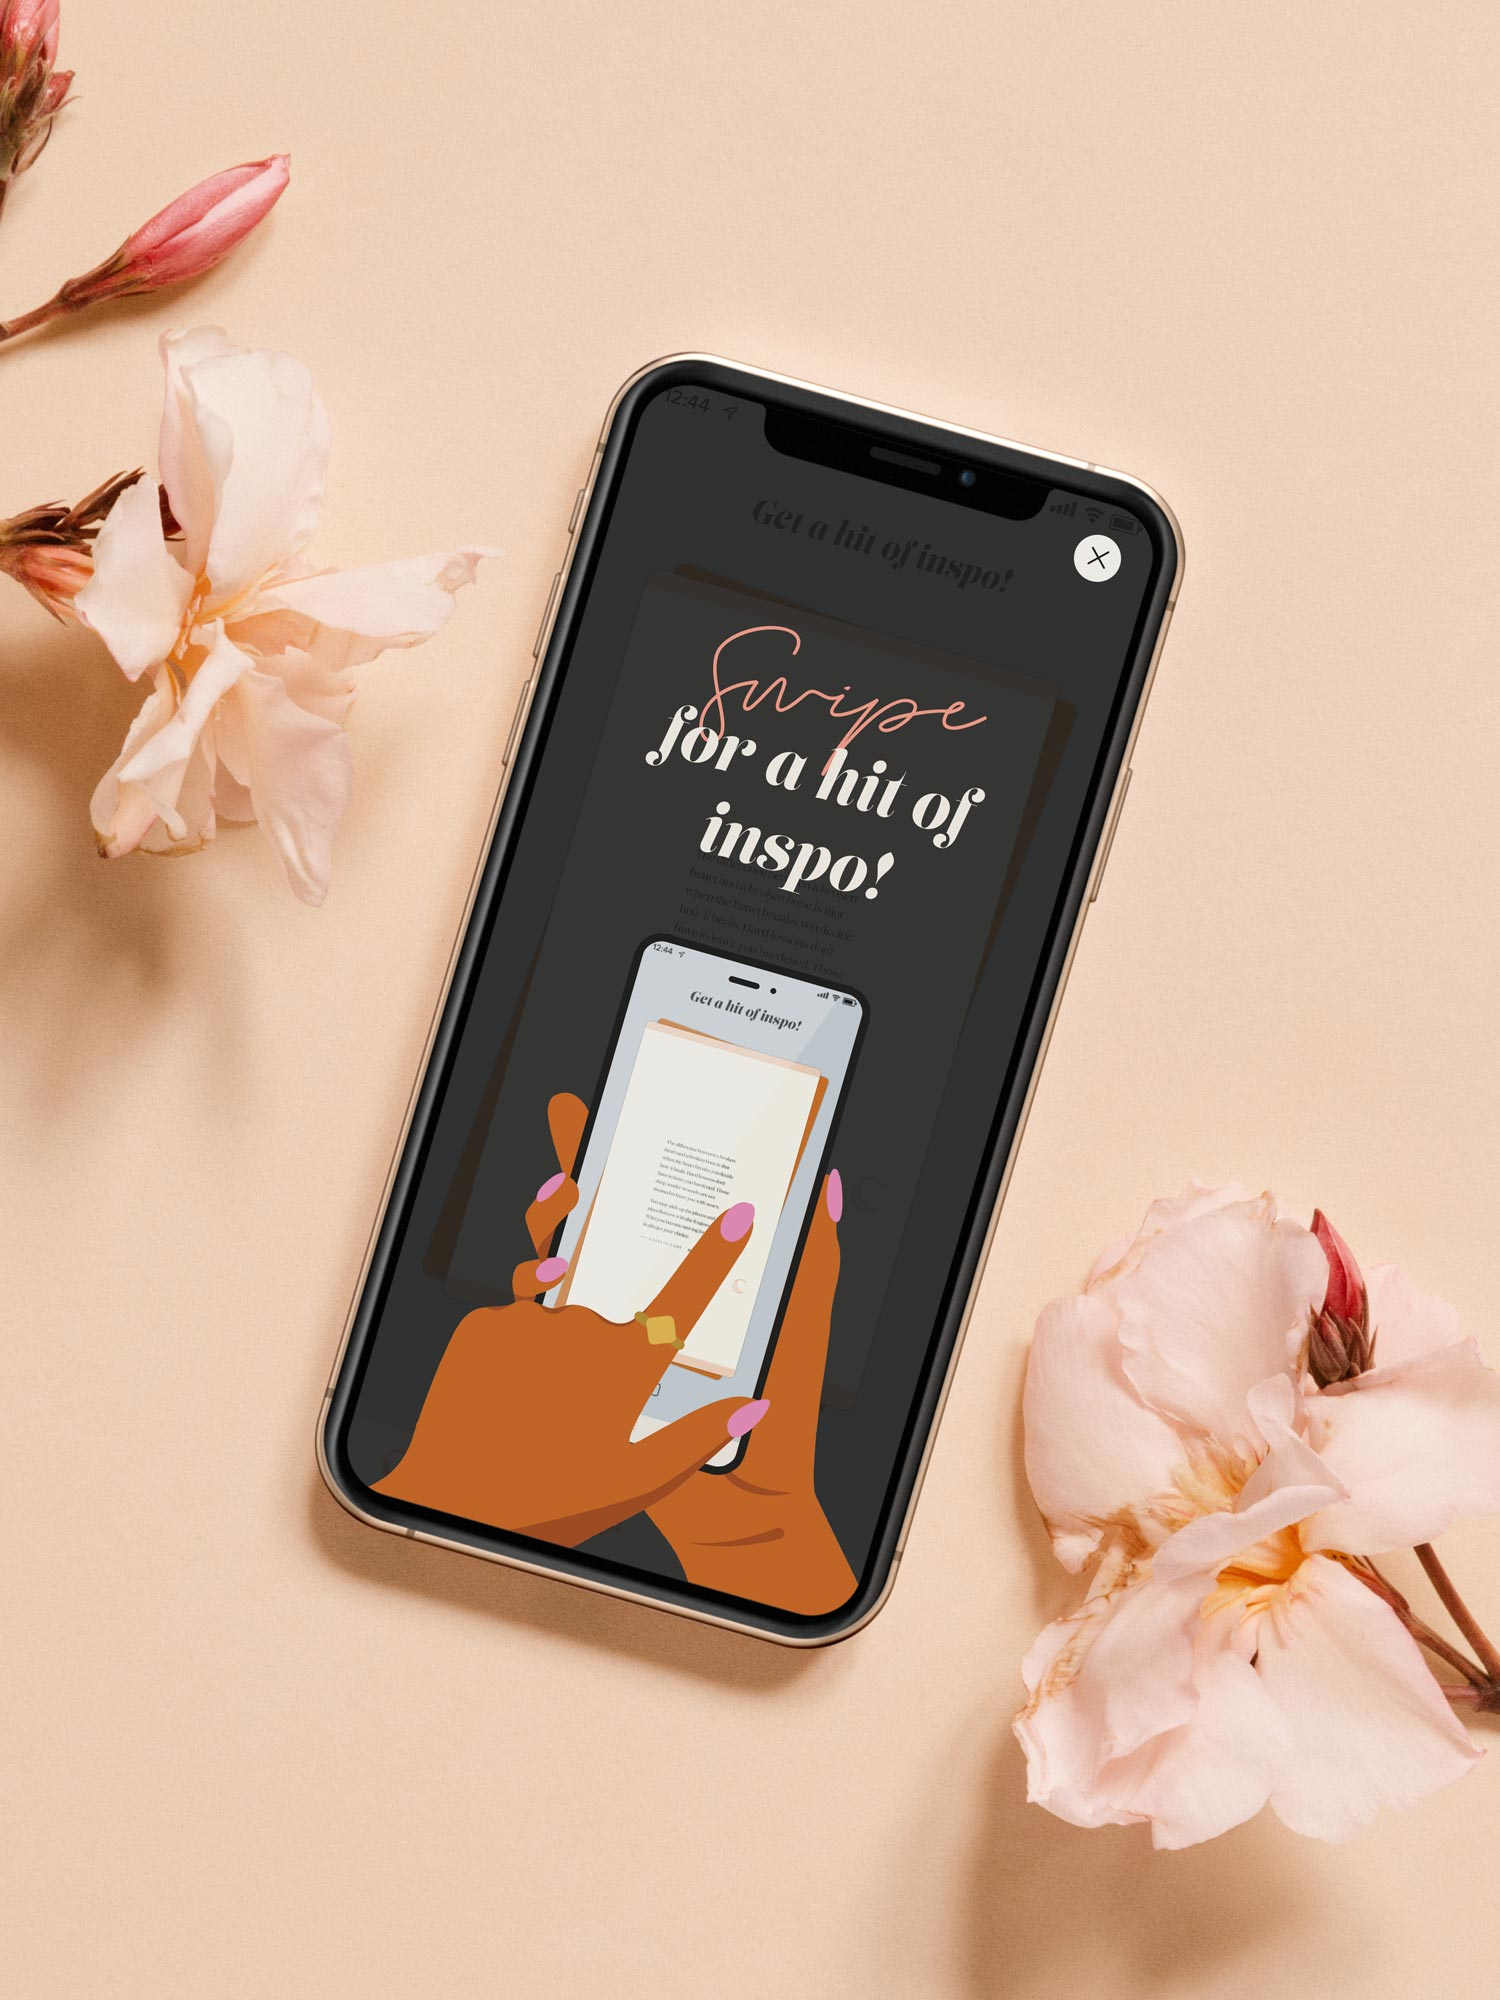 The Heavily Meditated app 'swipe for inspo' screen, displayed on an iphone